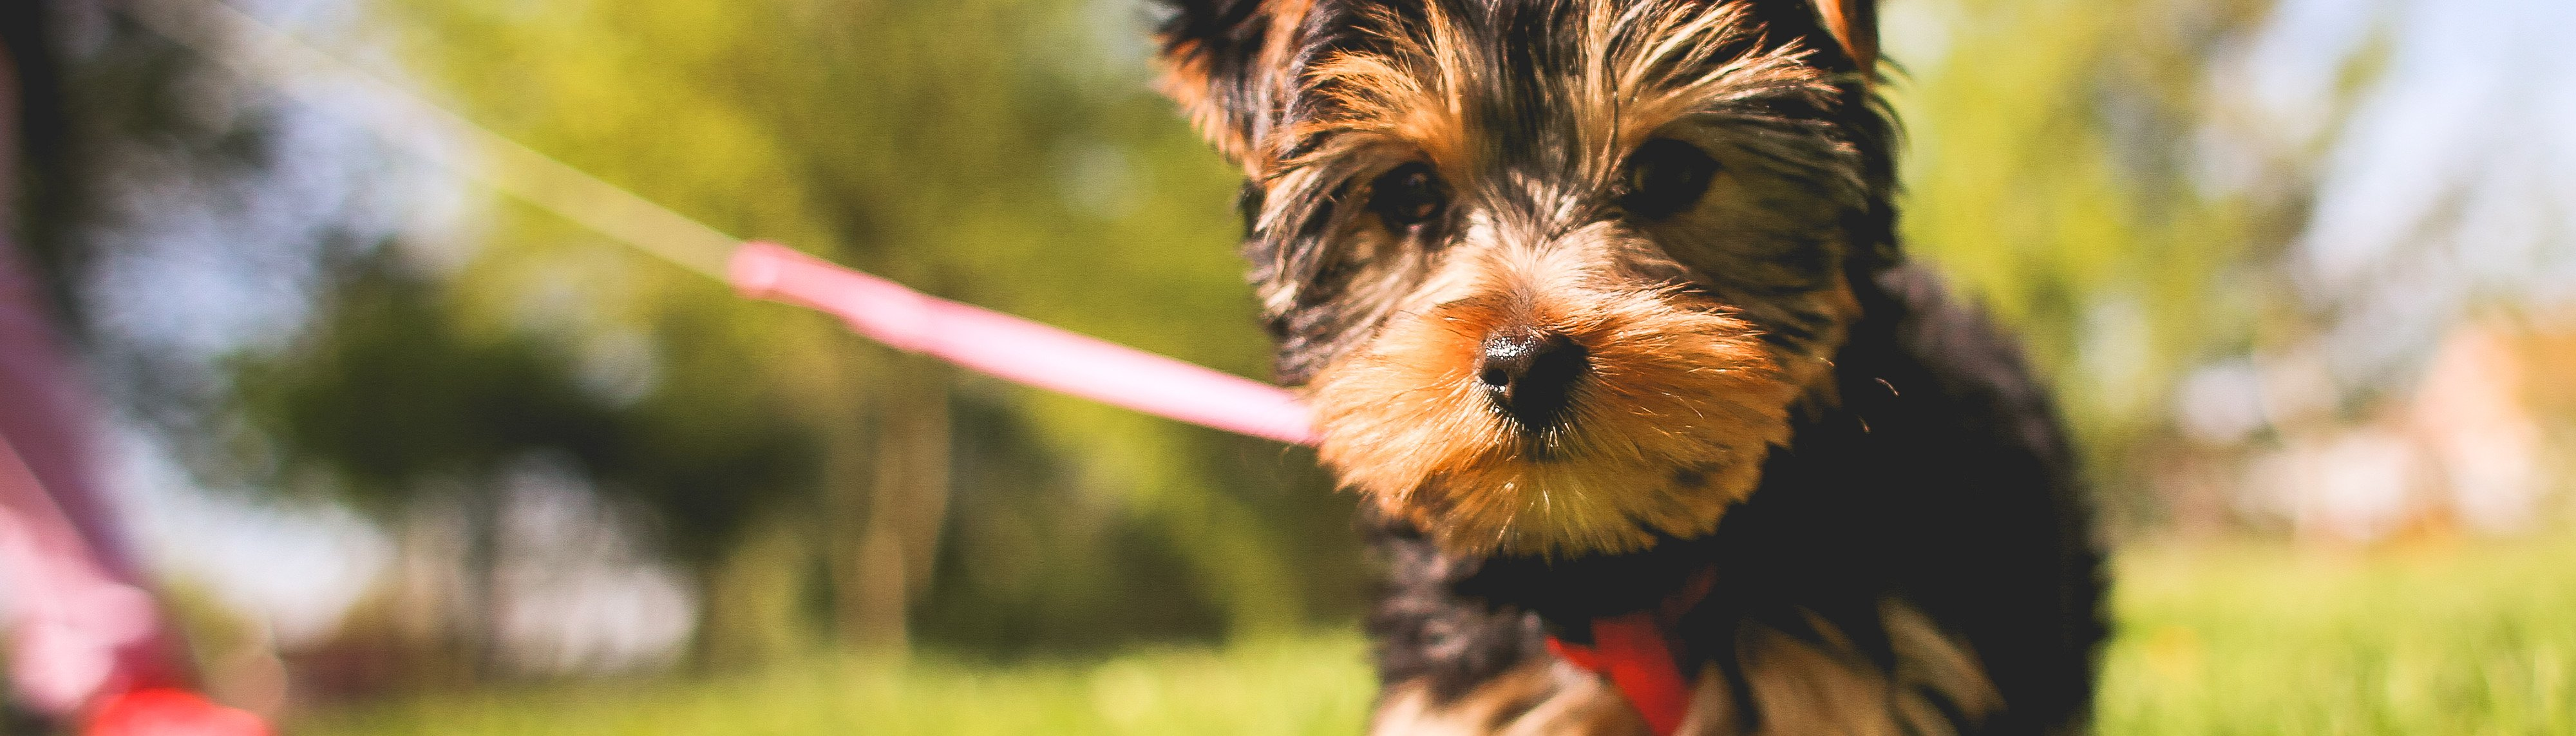 Yorkshire terrier puppy on lead